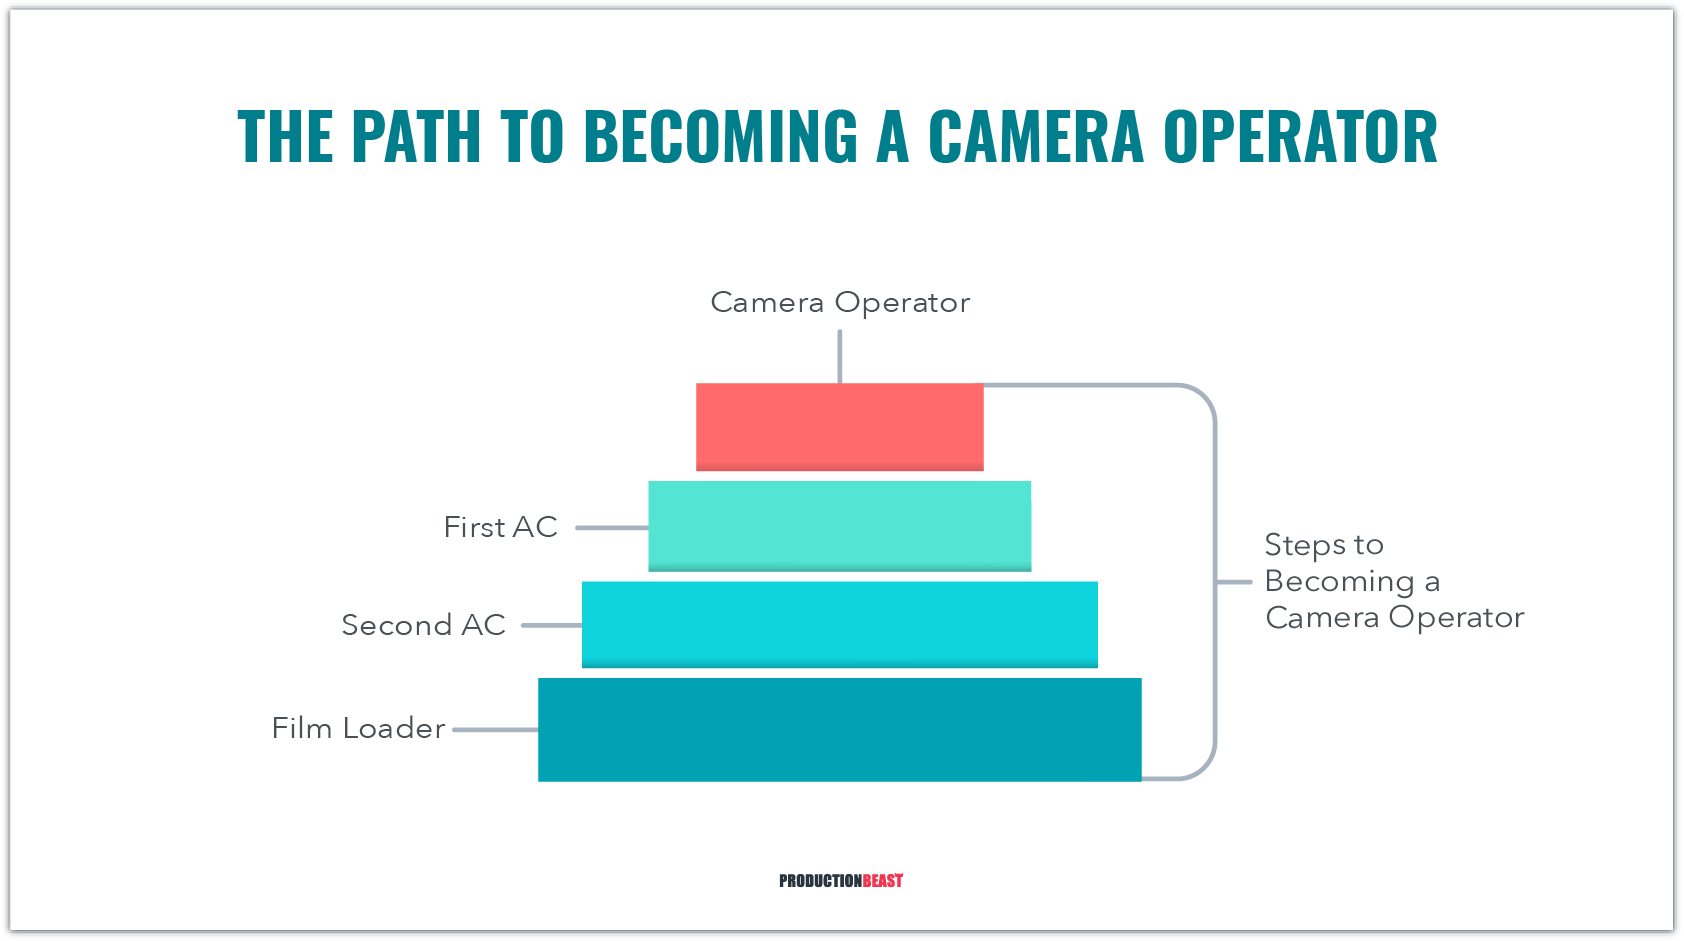 Guide To Becoming A Camera Operator - Camera Operator Qualifications - ProductionBeast